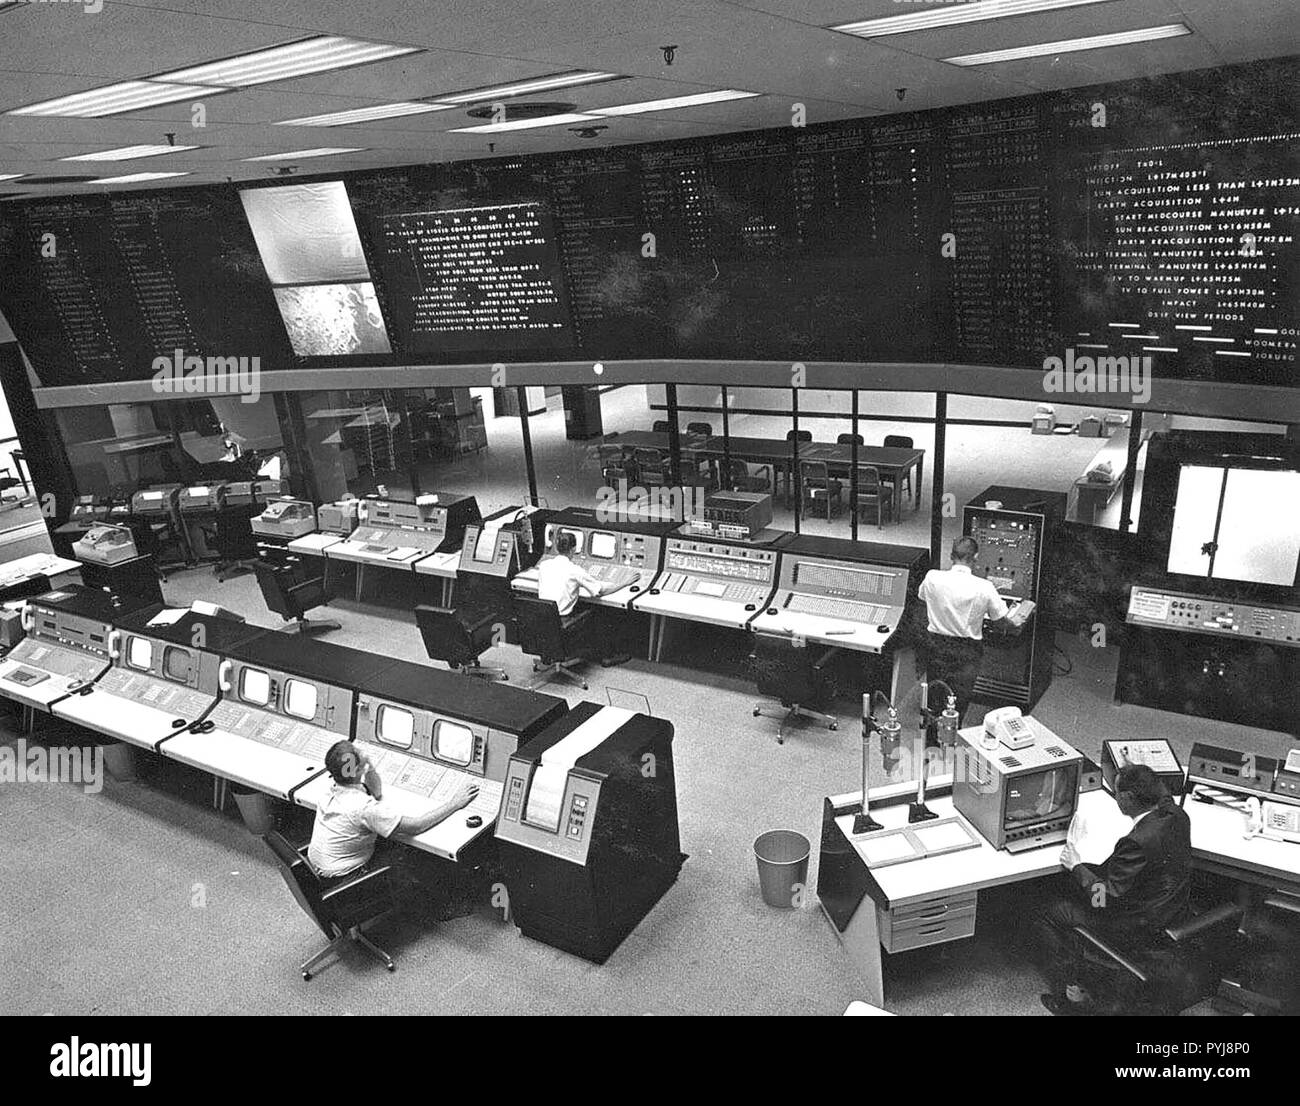 This image was taken in May 1964, when the building this nerve center is in, the Space Flight Operations Facility (Building 230), was dedicated at JPL. - Stock Image